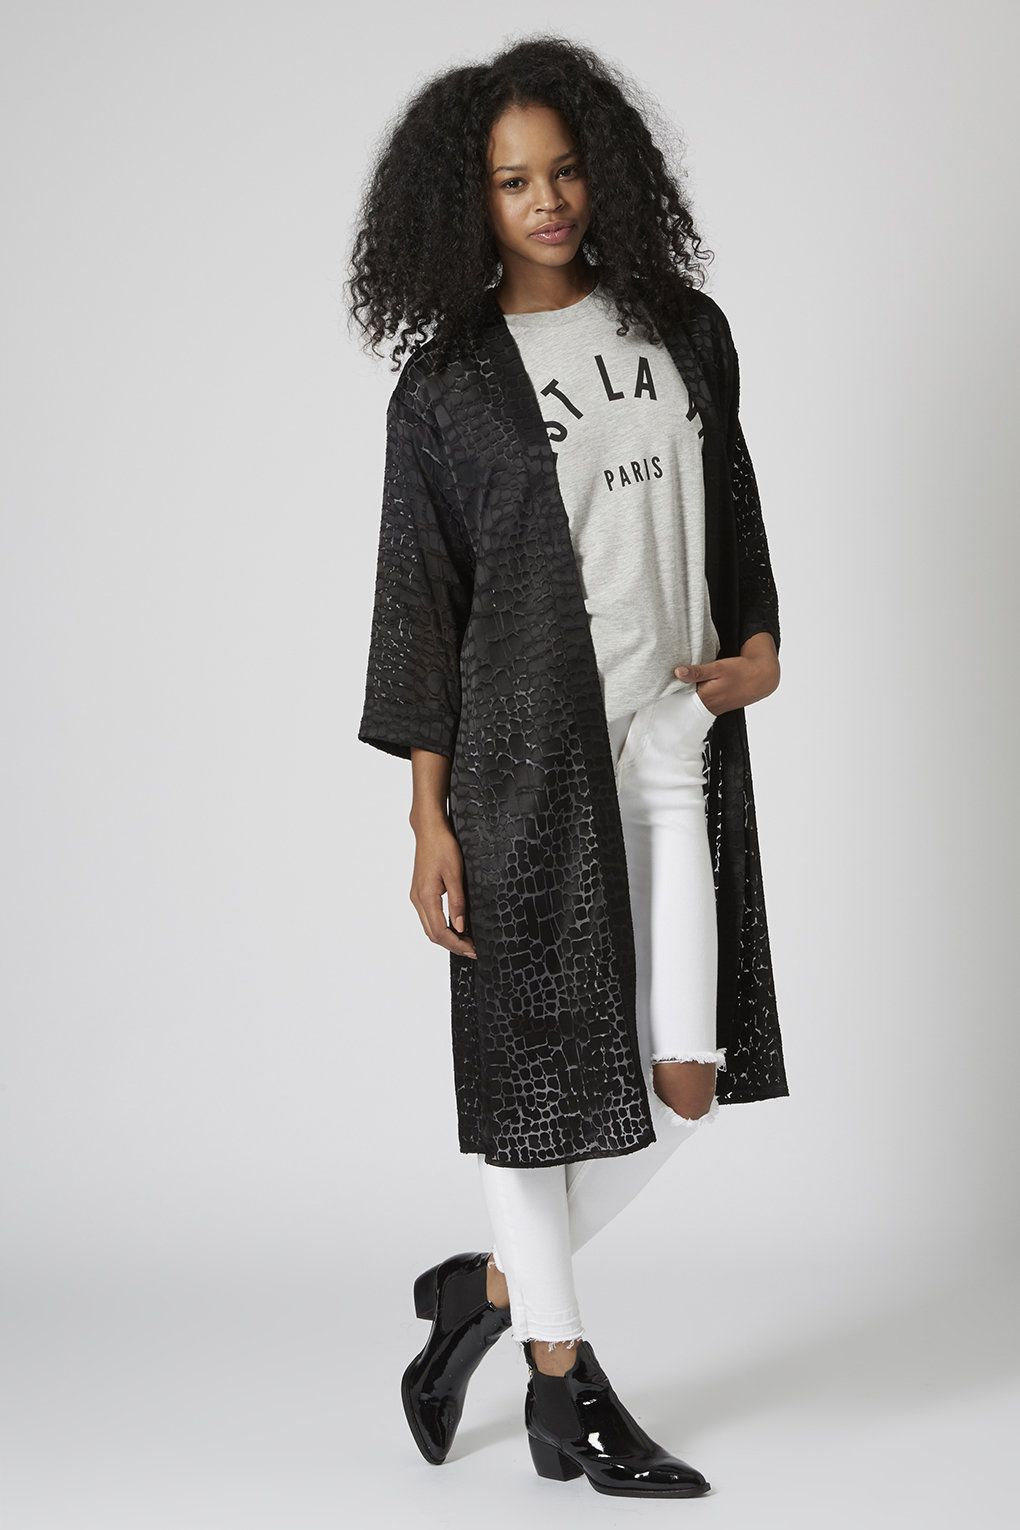 Burnout Reptile Duster Jacket - Topshop USA